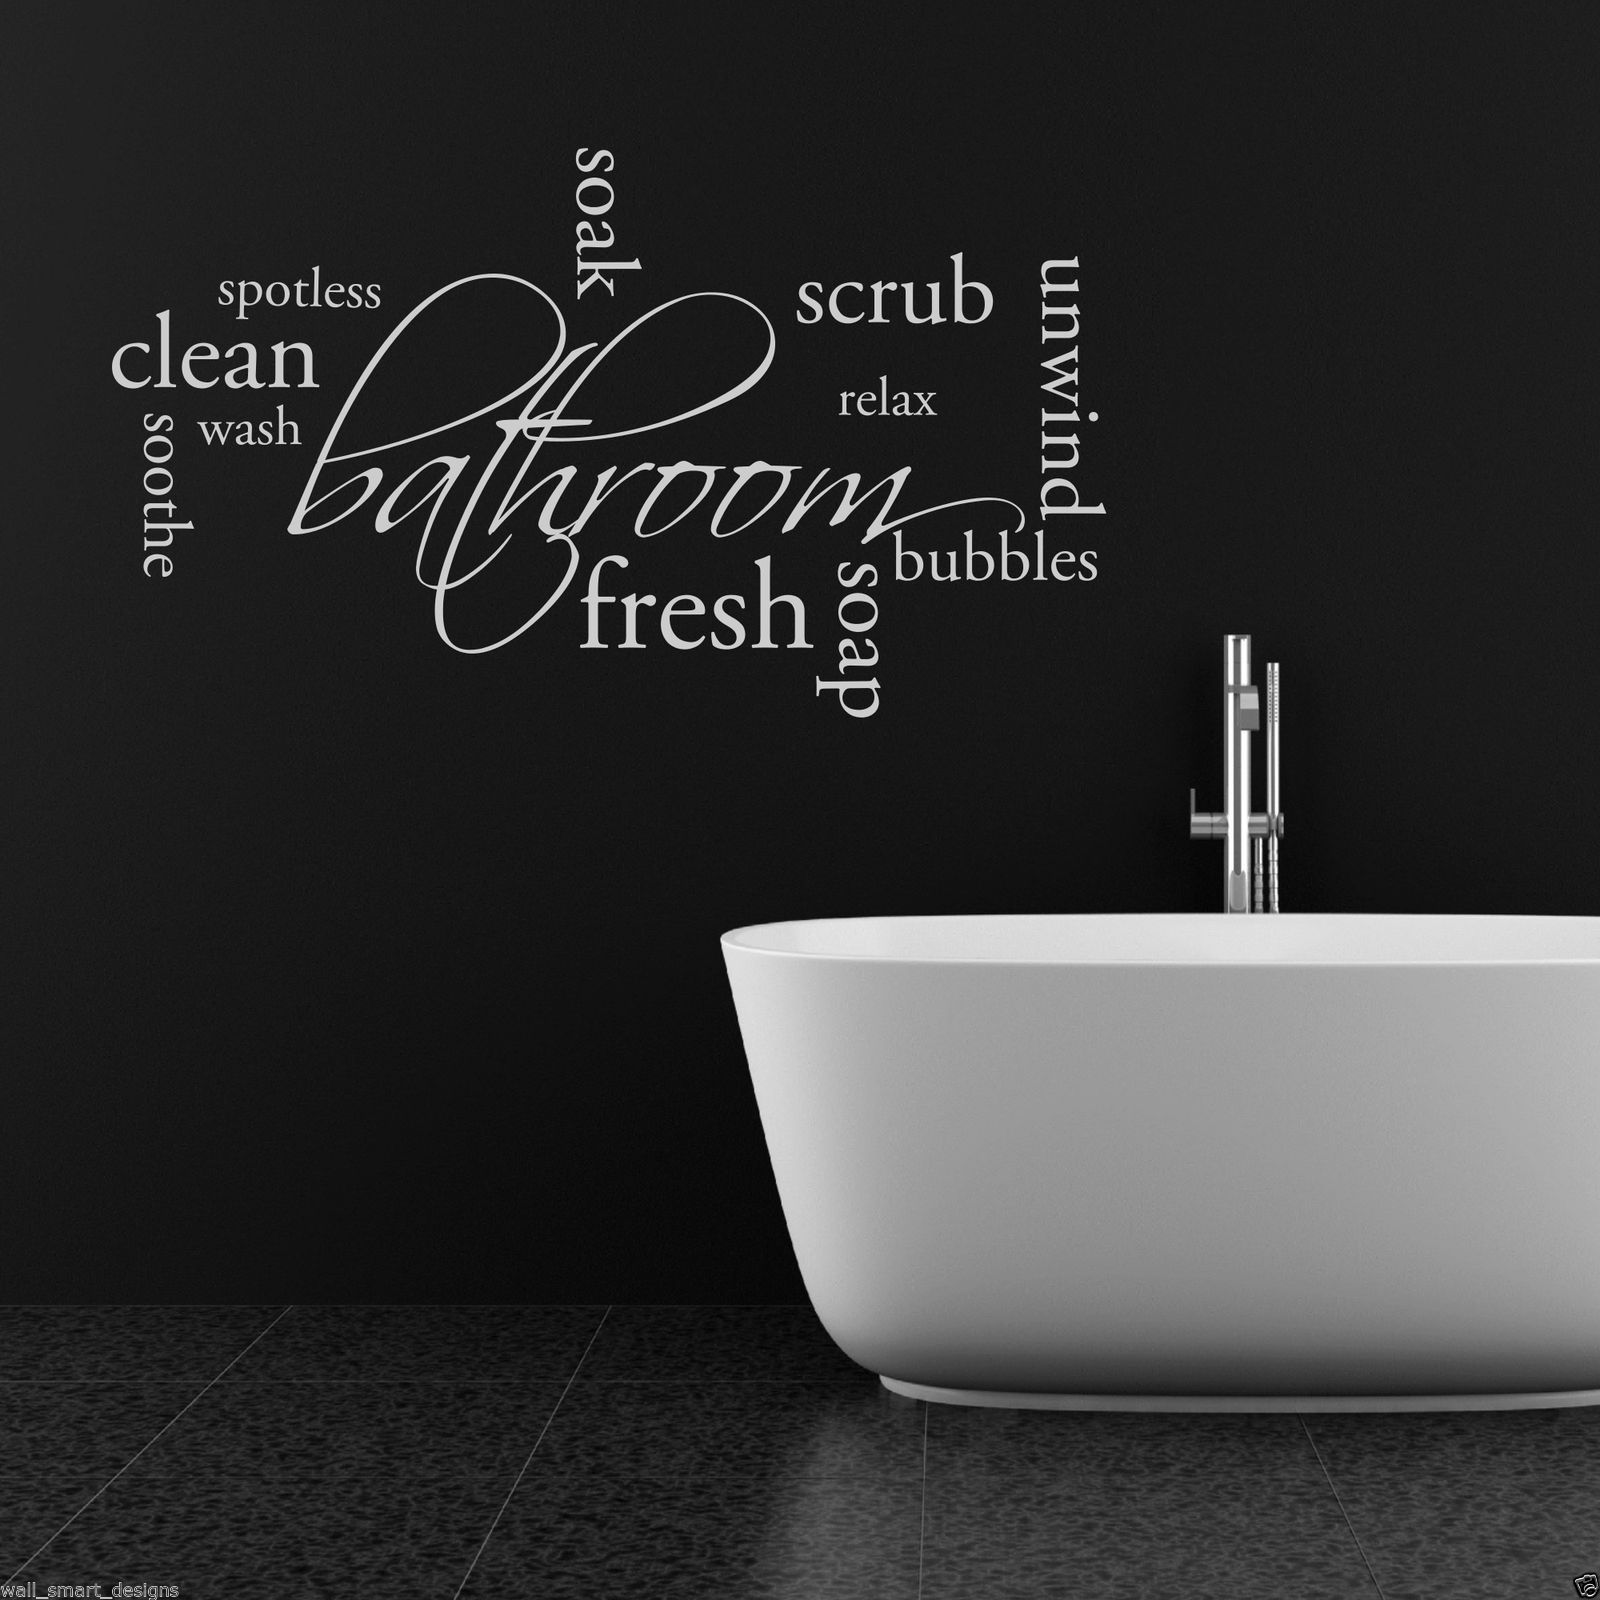 Relax Soap Bathroom Wall Sticker Quote Decal Mural Stencil